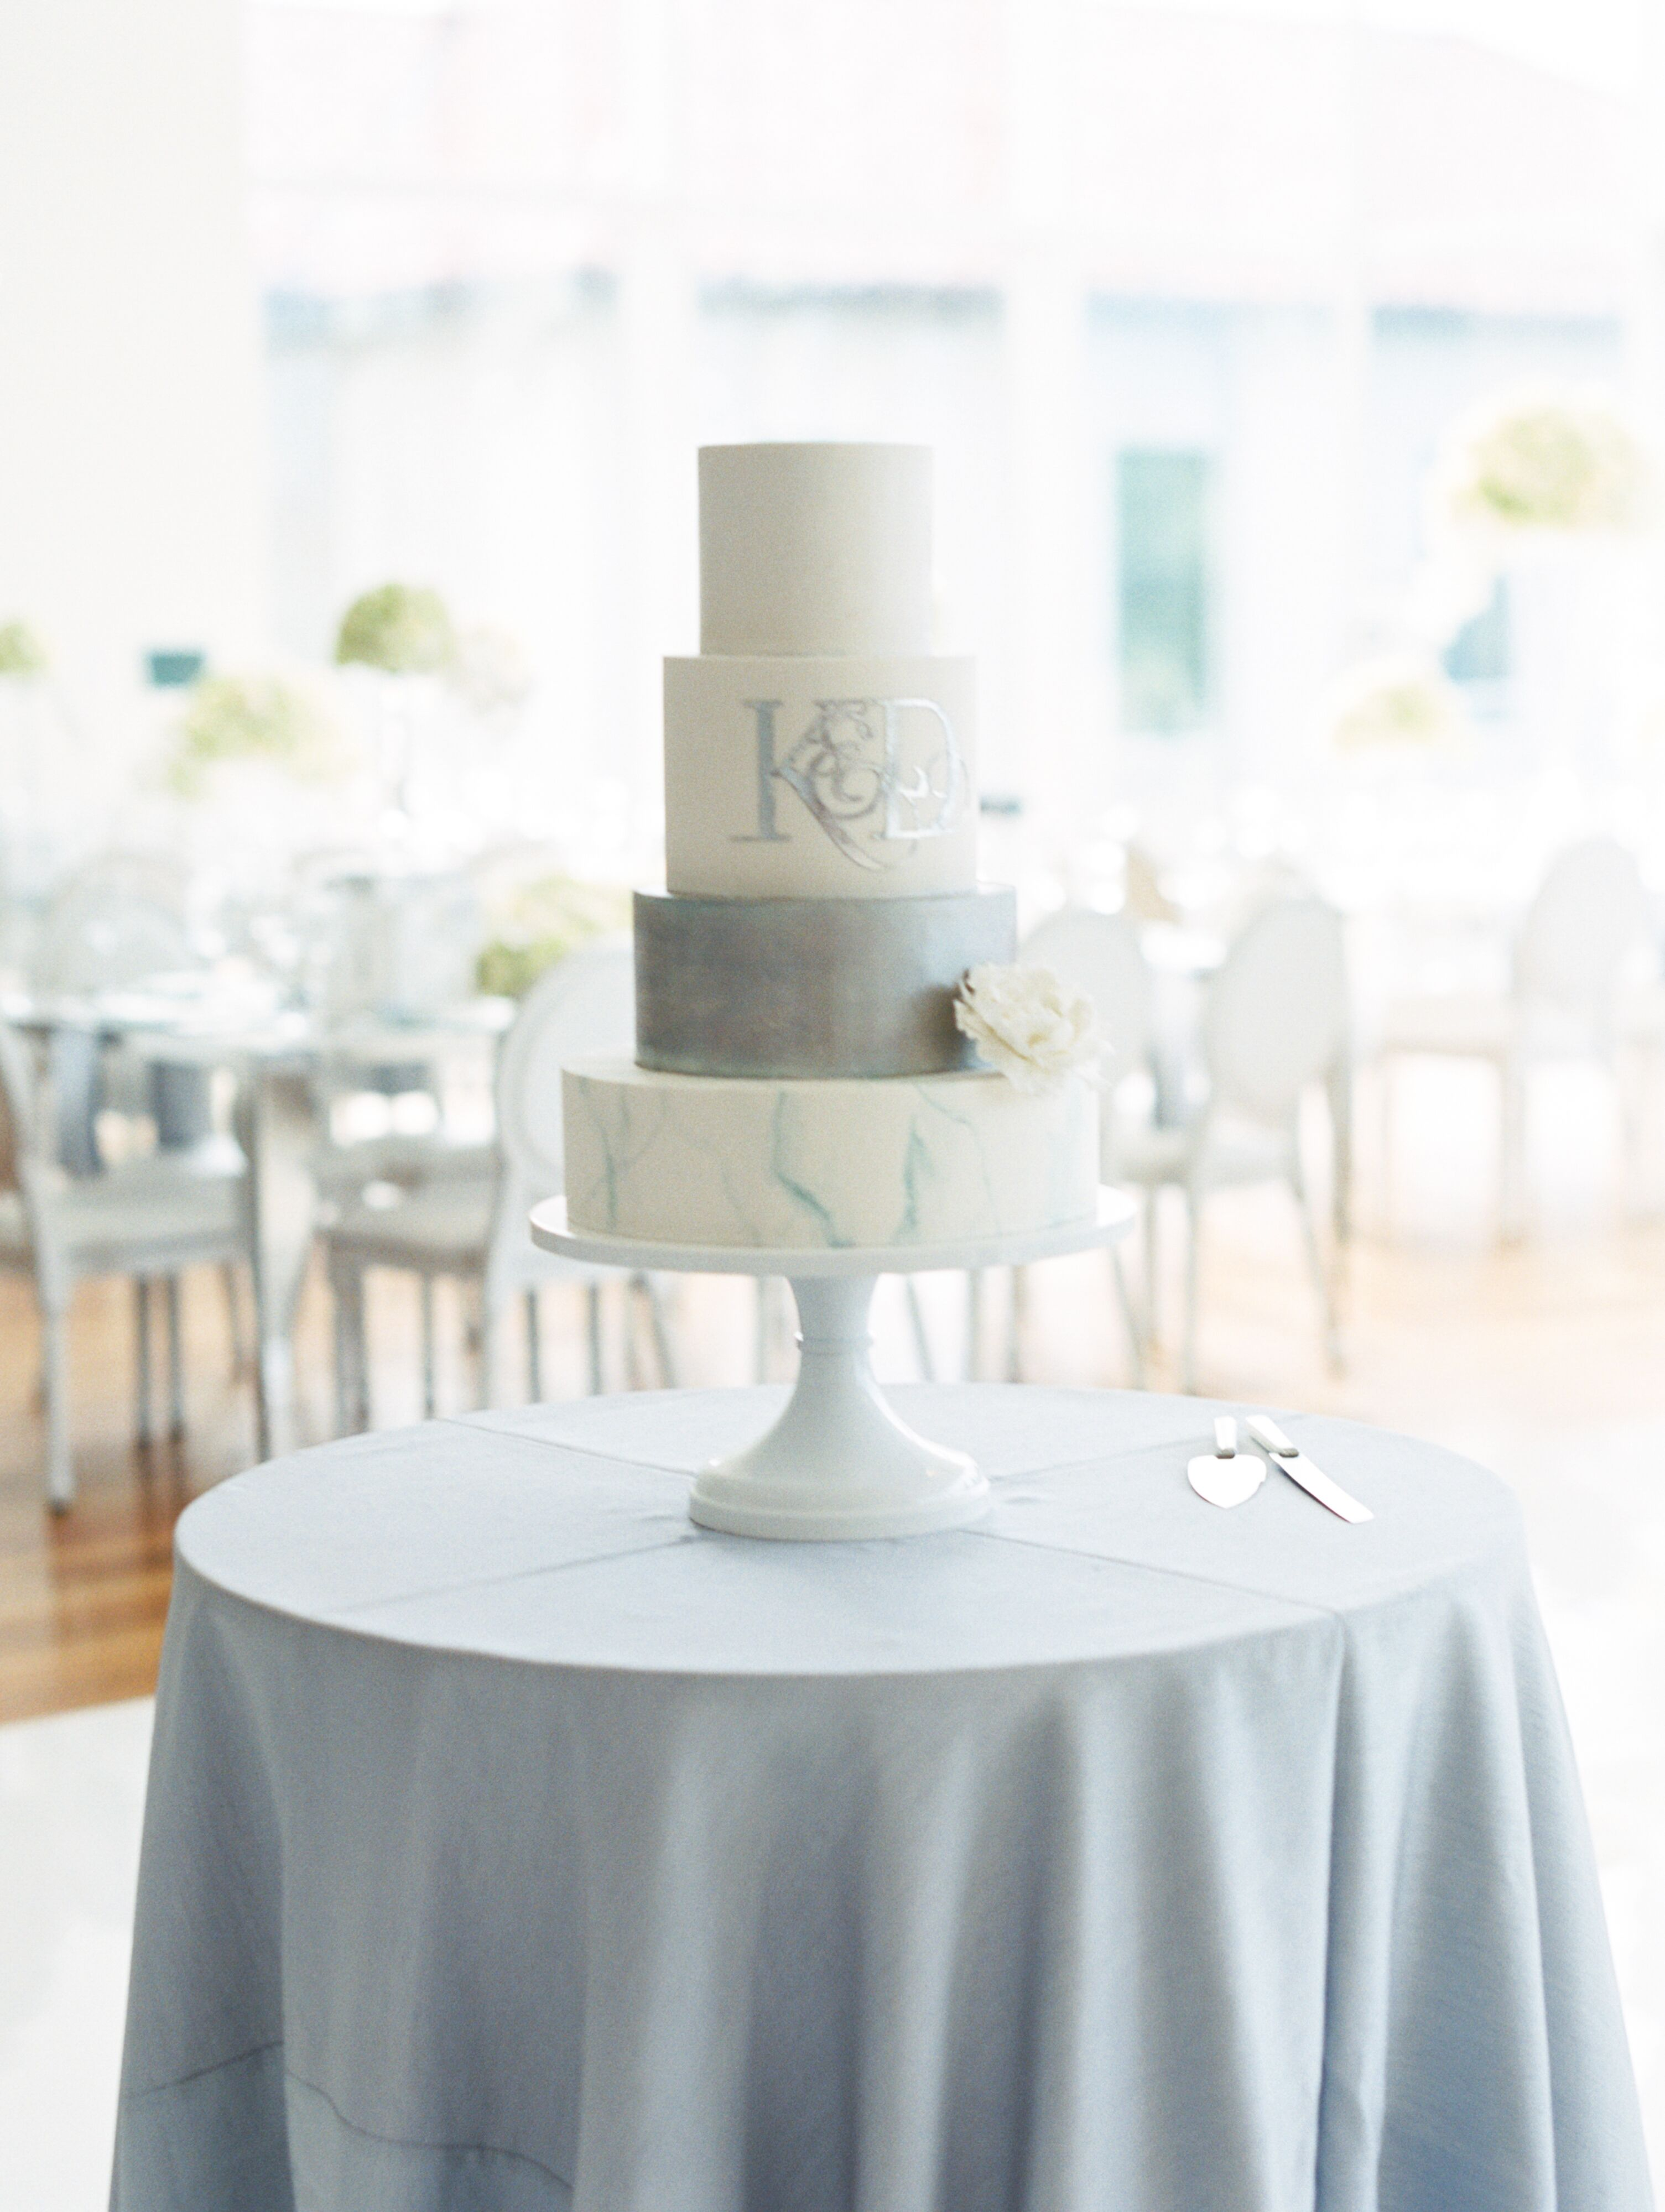 Marbled Fondant Cake With Silver Monogram Decal